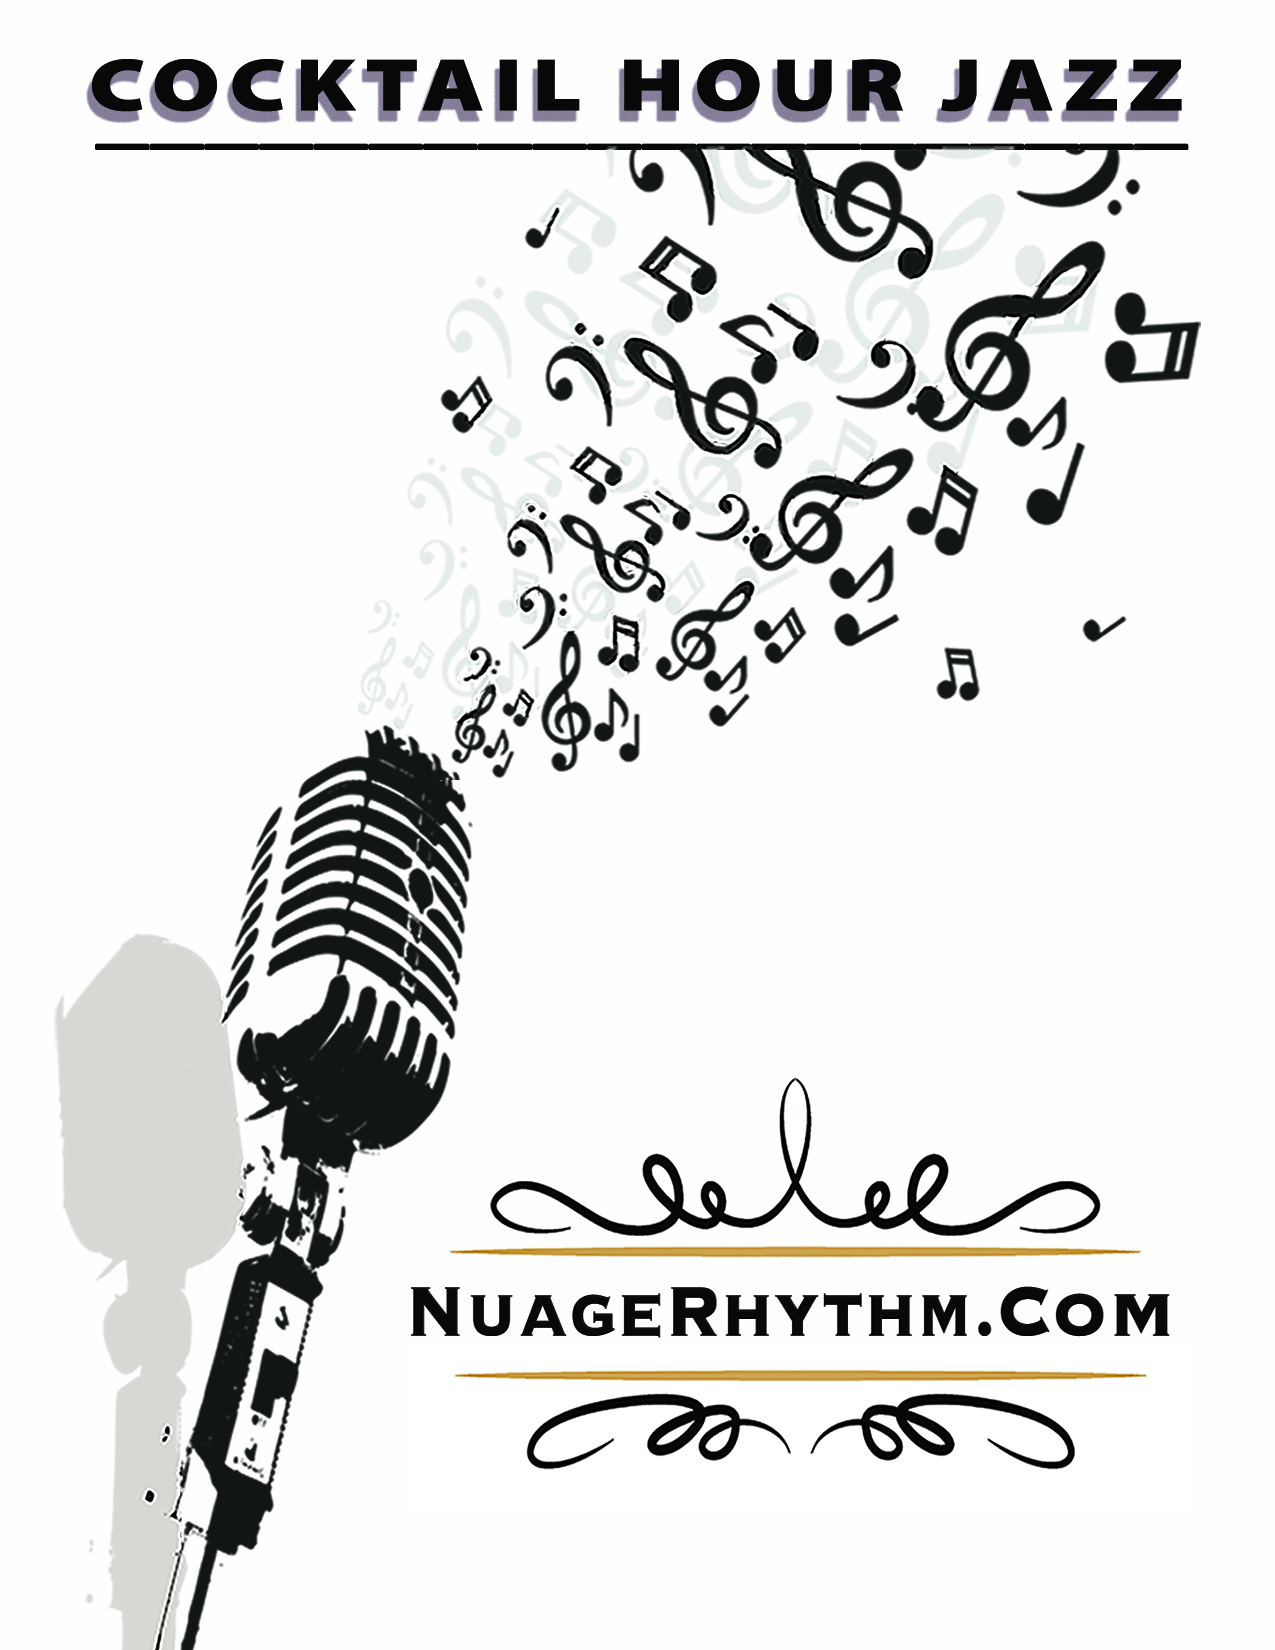 Sign Nuage Rhythm.jpg